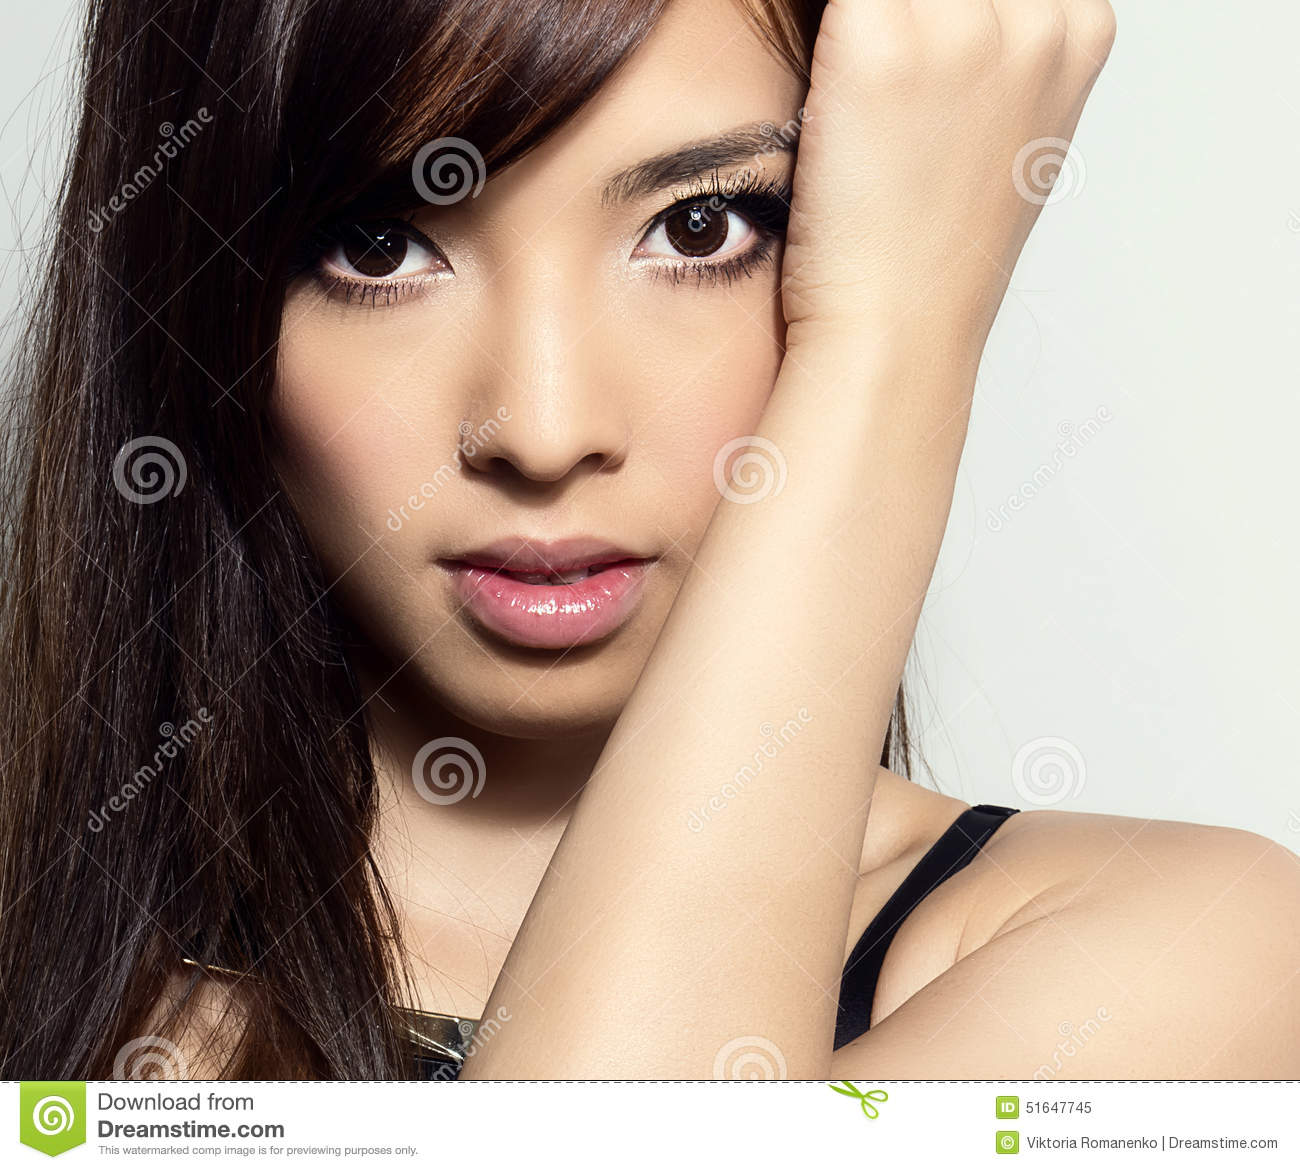 Flawless Skin: Young Beautiful Asian Woman With Flawless Skin And Perfect